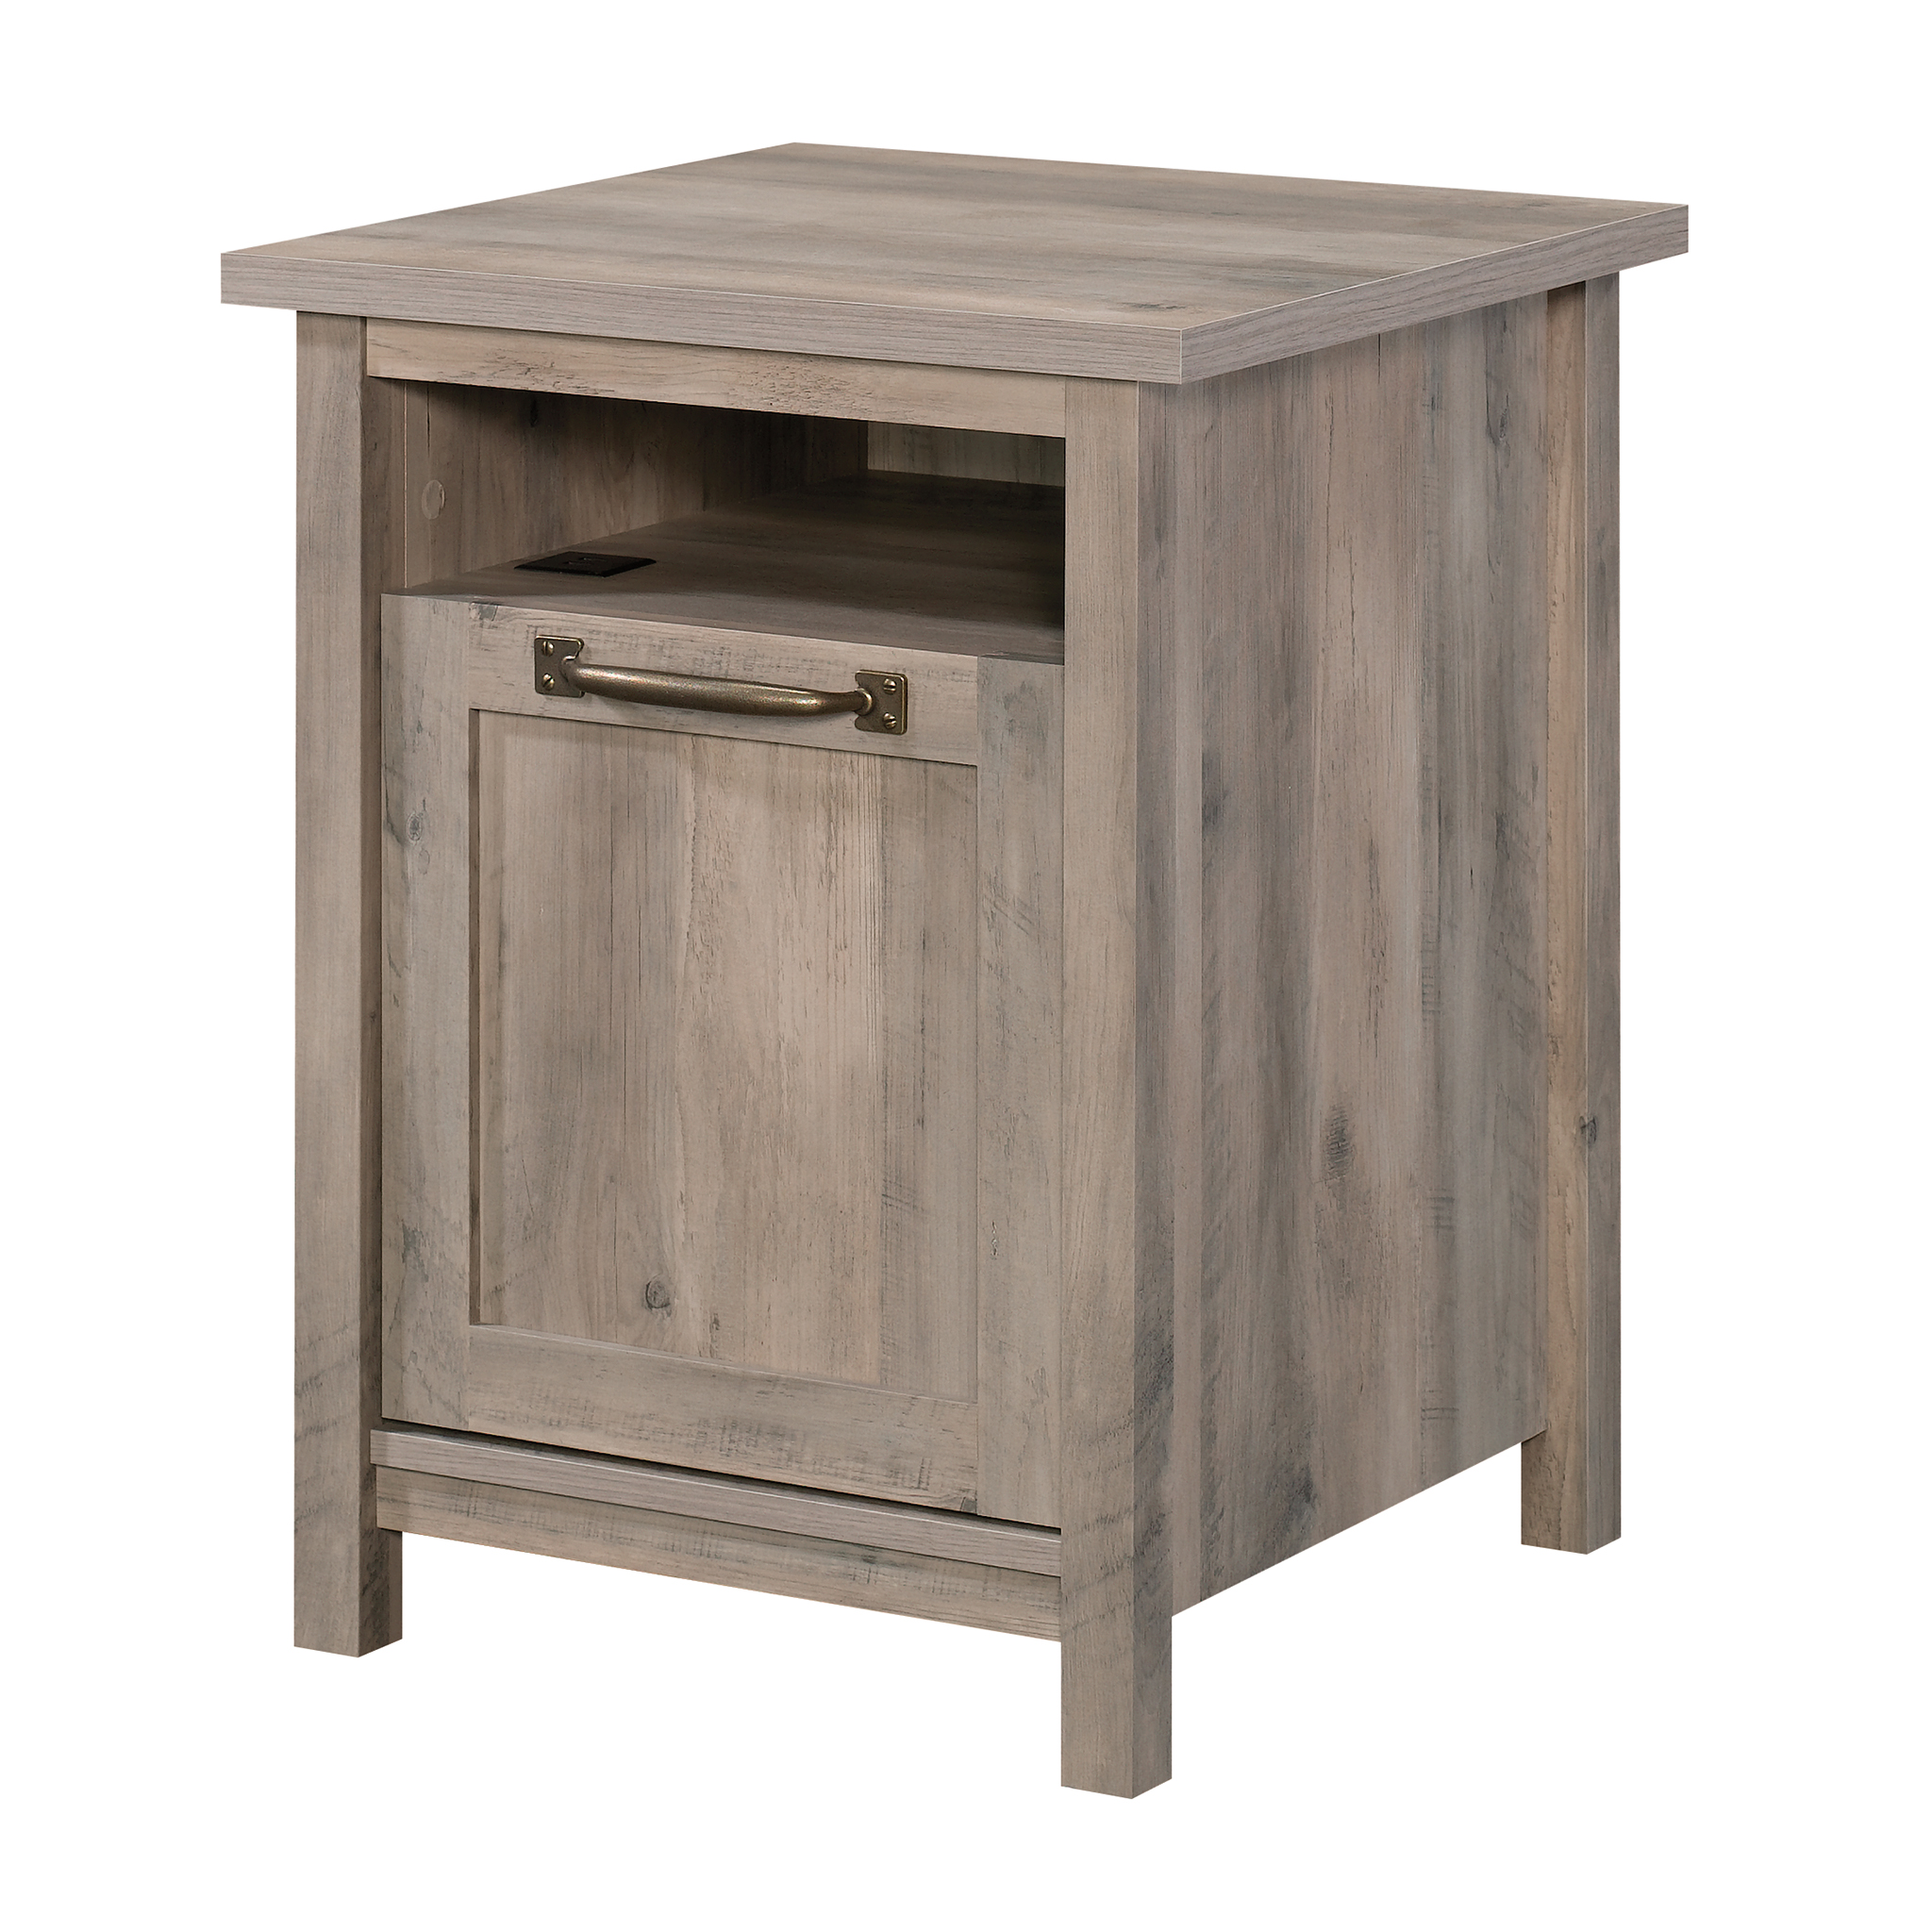 Rustic White Finish Better Homes Gardens Modern Farmhouse End Table Nightstand With Usb Home Kitchen Furniture